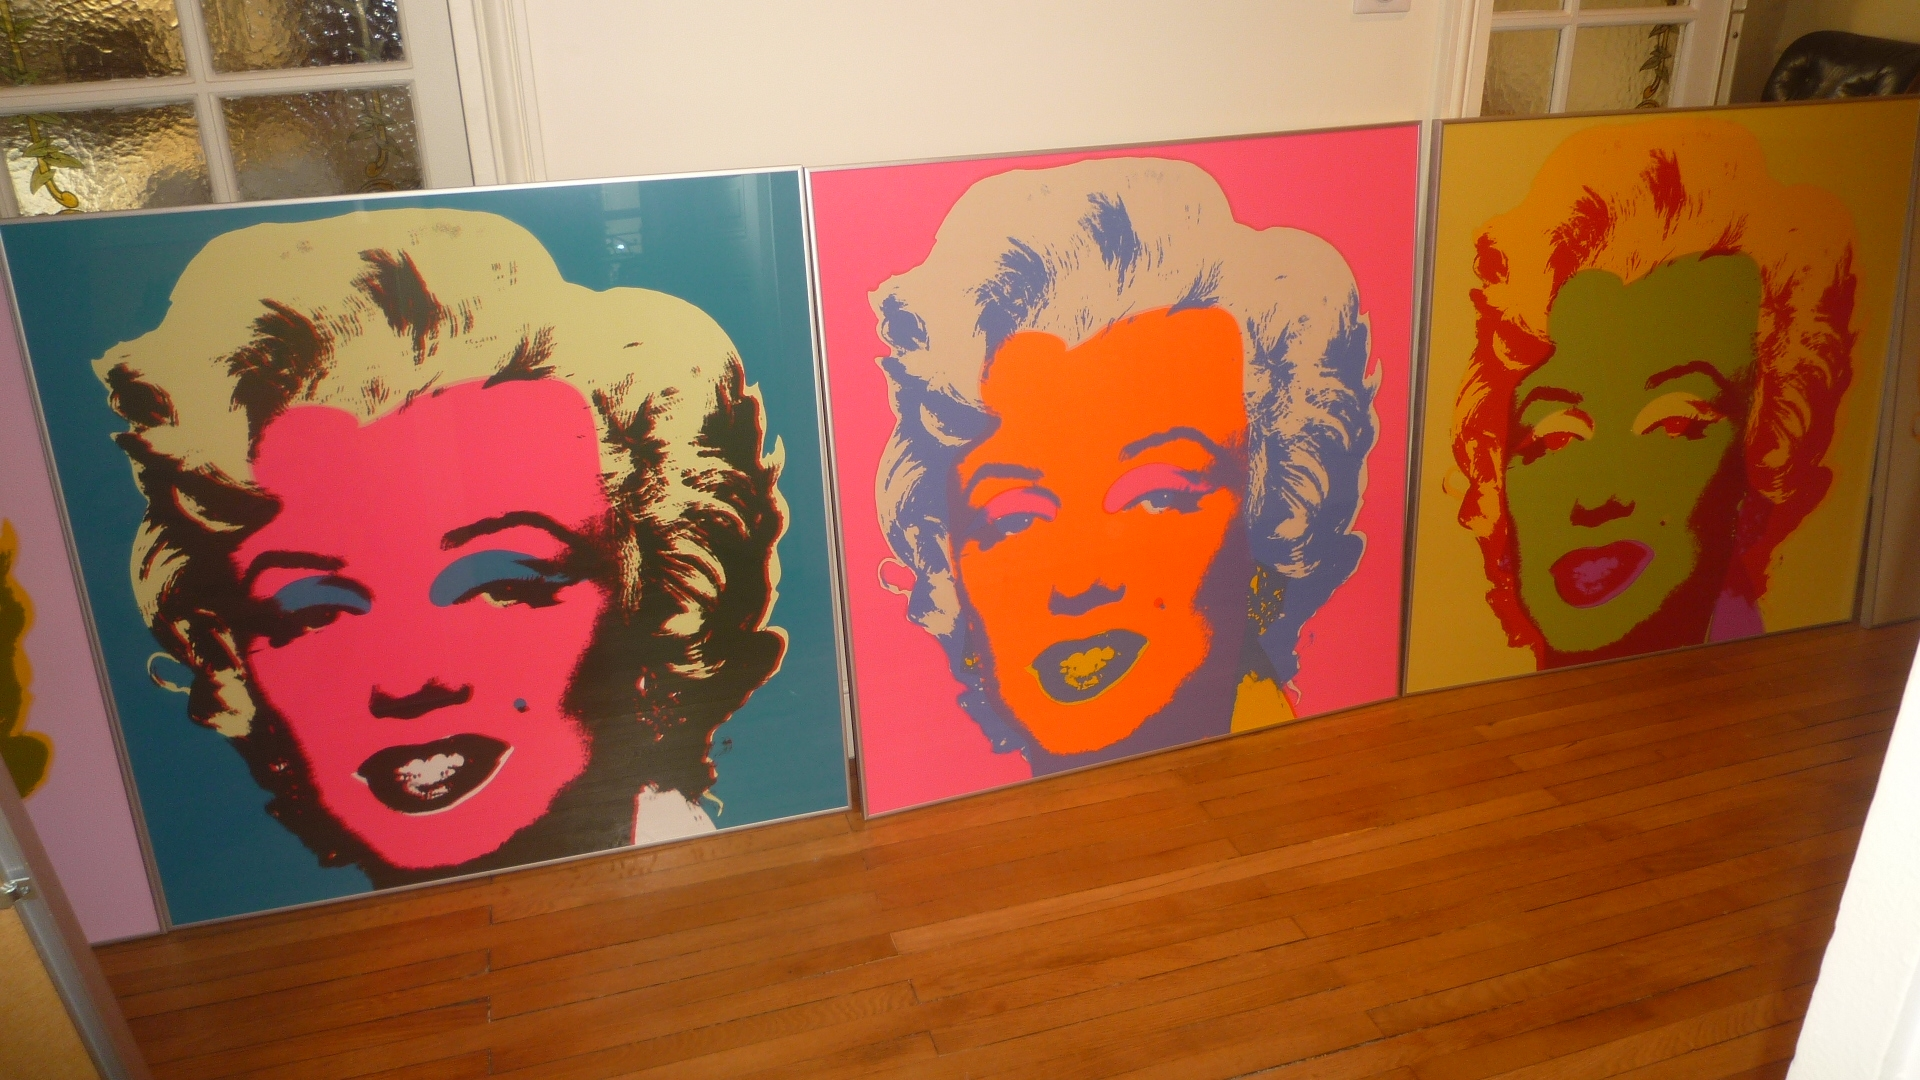 10 S 233 Rigraphies Andy Warhol Marilyn Monroe L Atelier 50